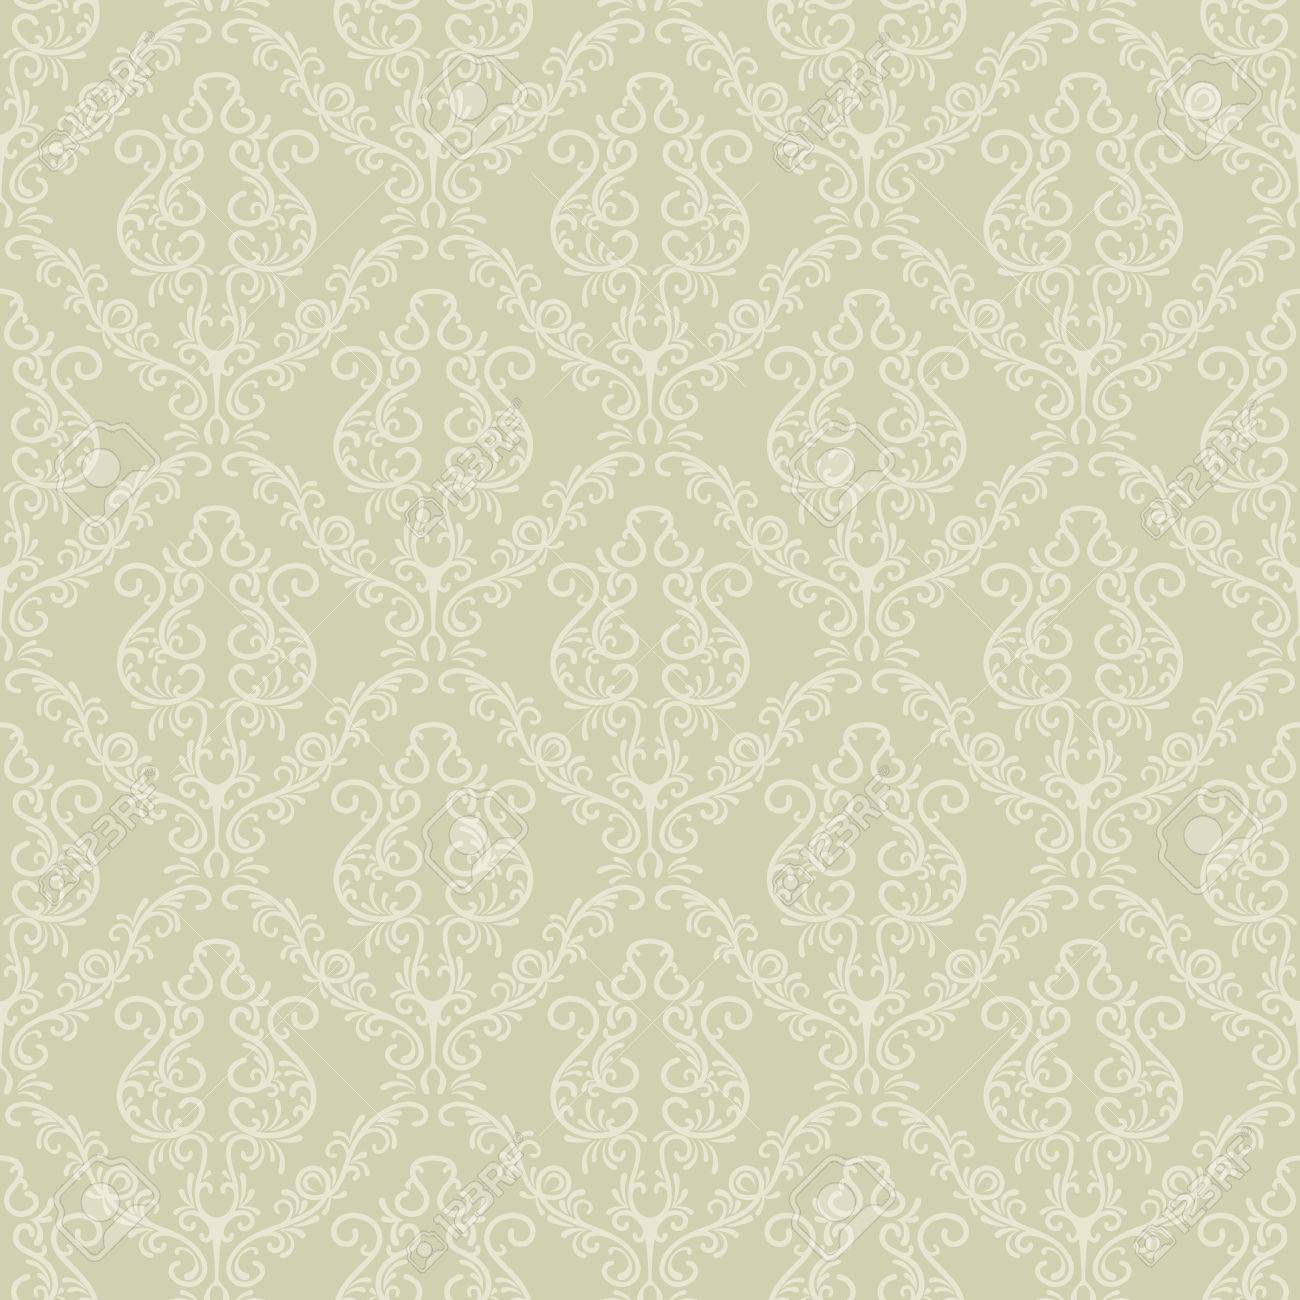 Seamless Vintage Vector Wallpaper Pattern In A Soft Green Color Stock